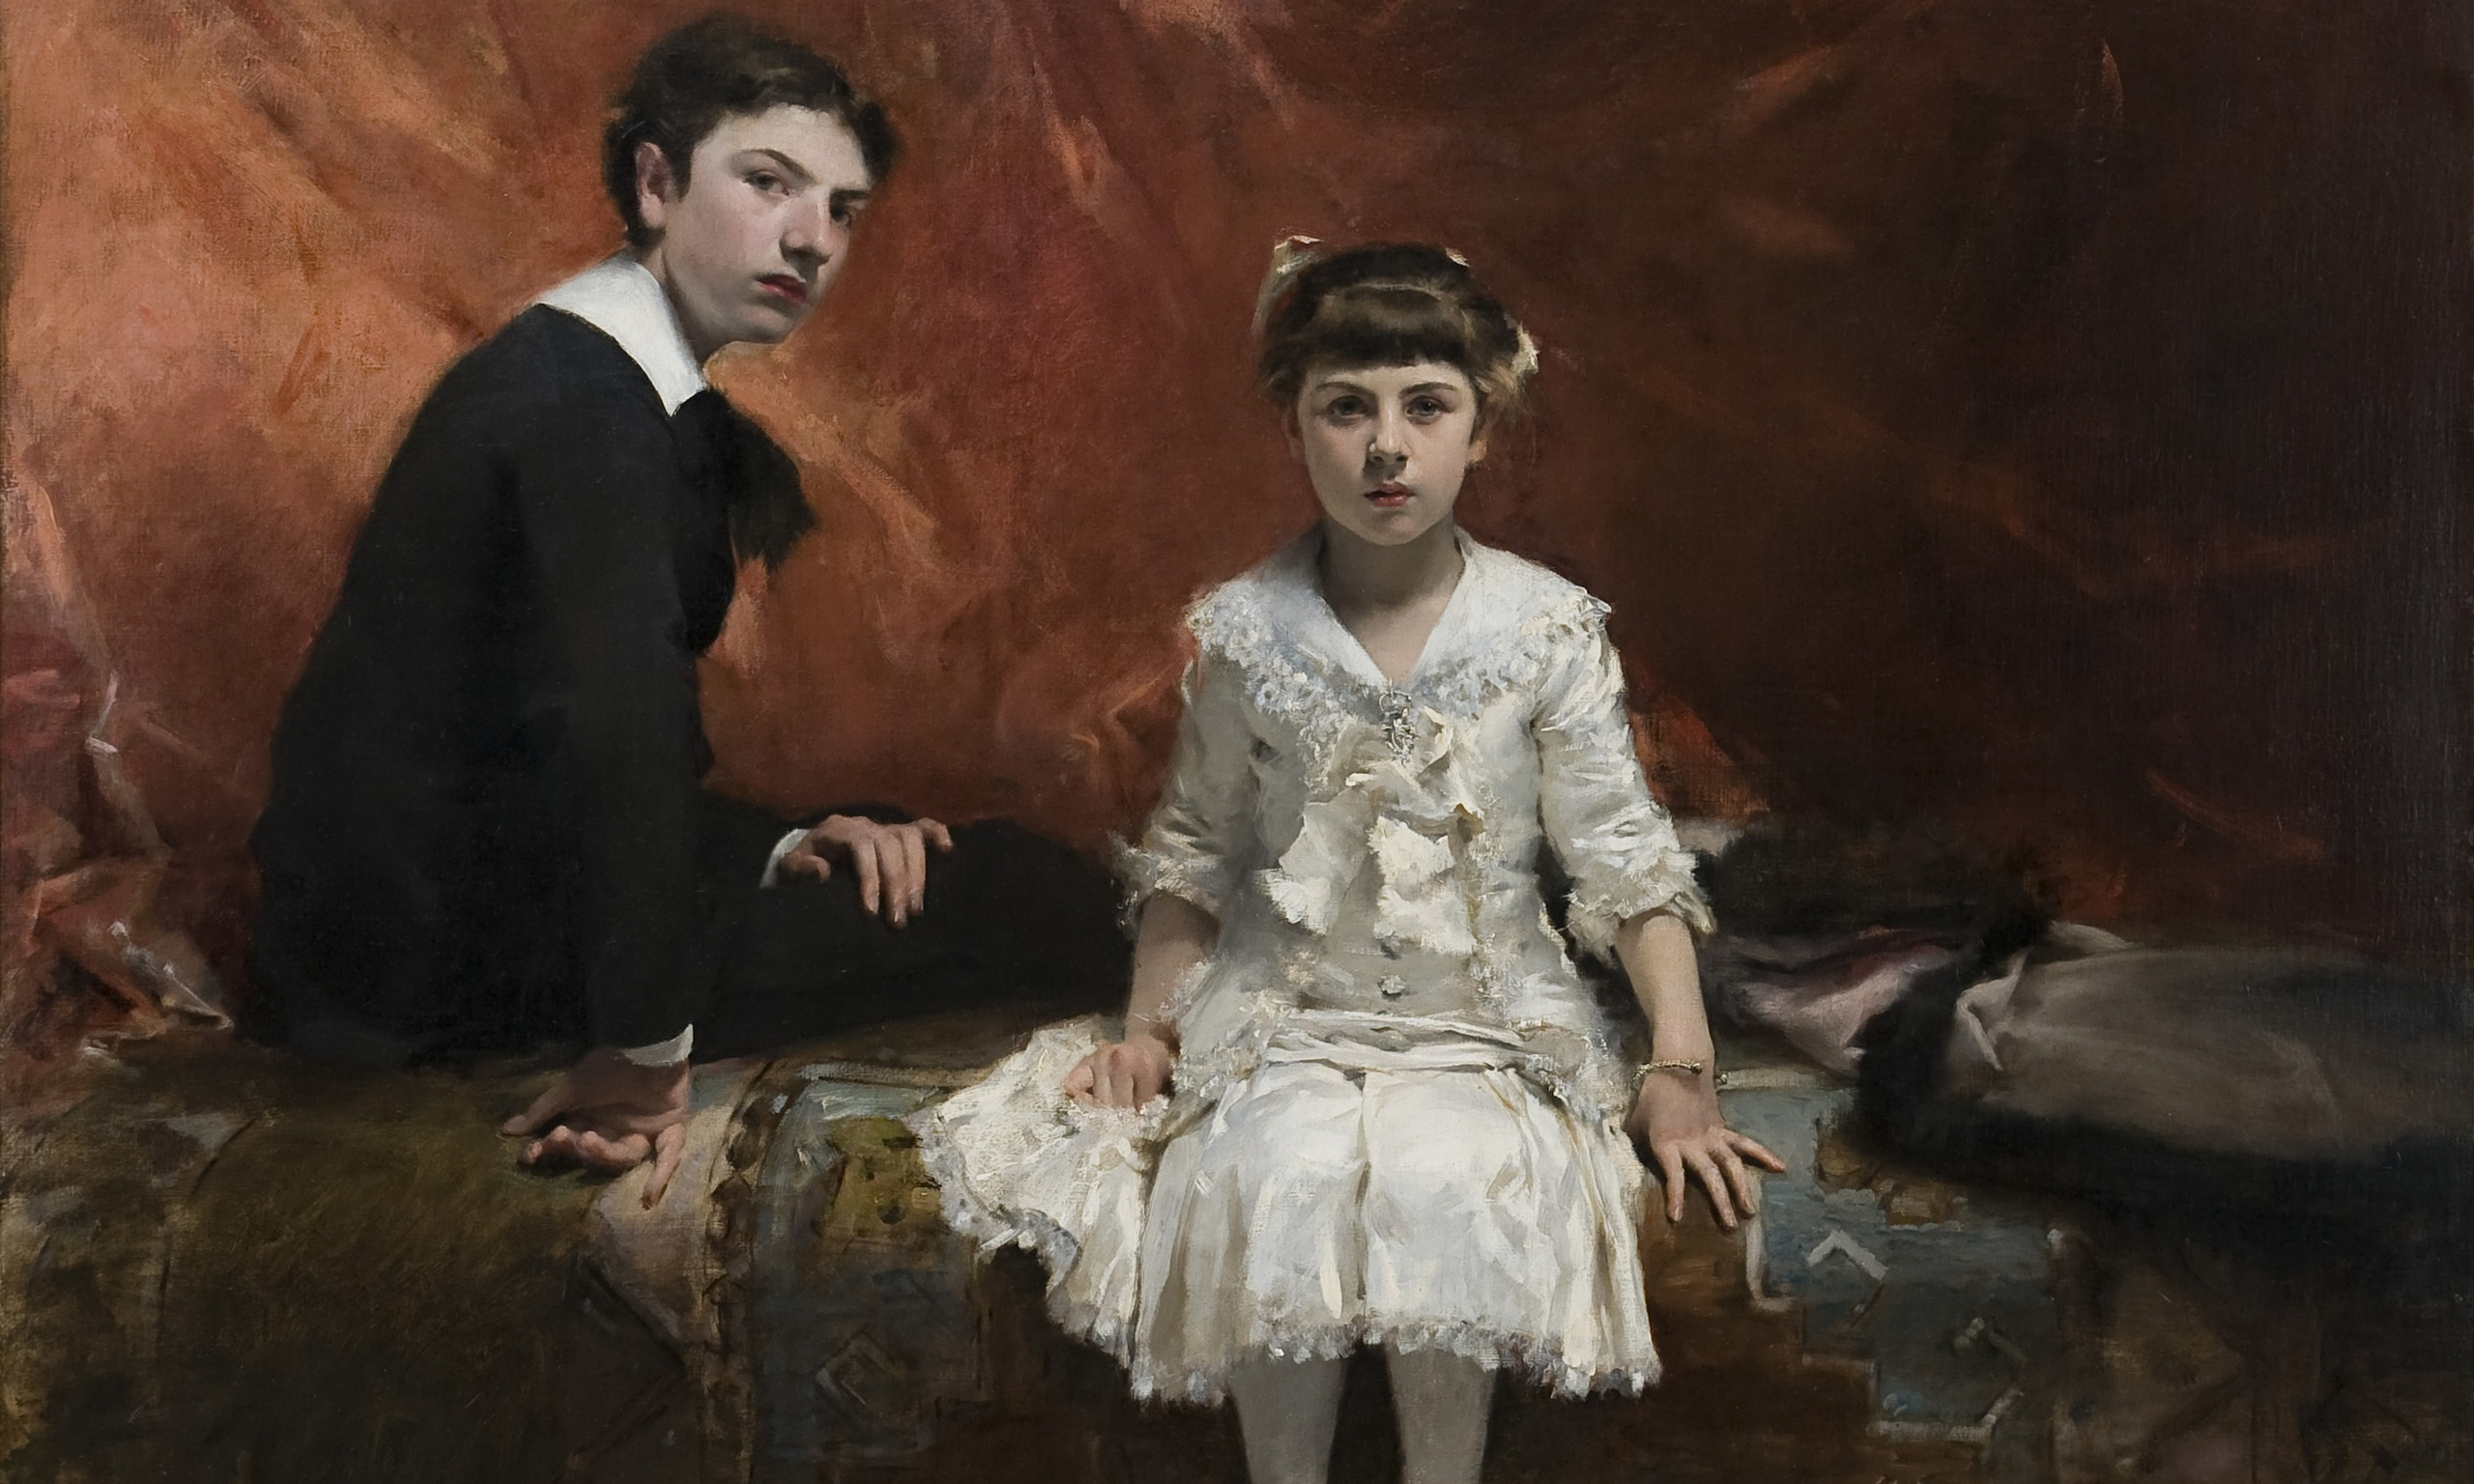 National Portrait Gallery S Bid To Save John Singer Sargent S Reputation Art And Design The